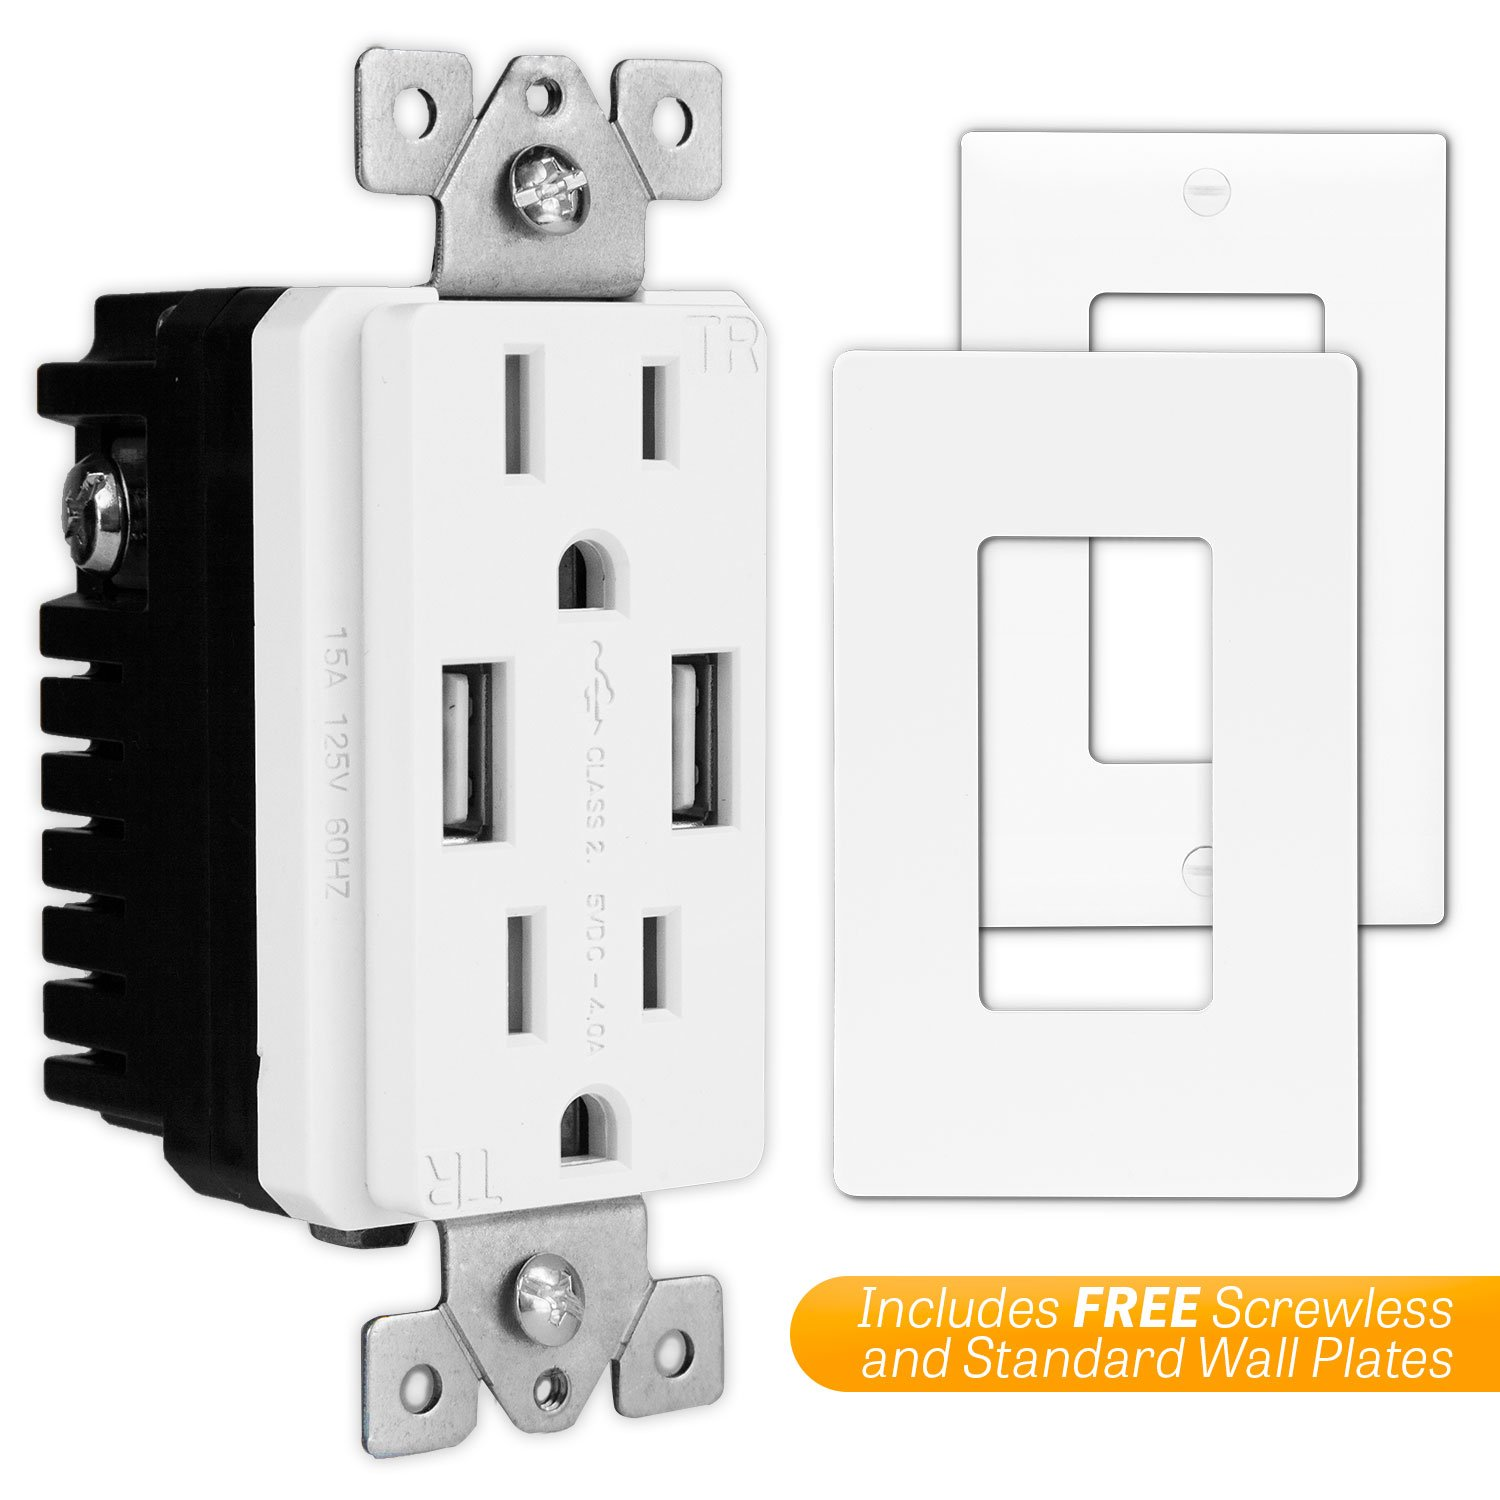 TOPGREENER TU2154A High Speed USB Charger Outlet, USB Wall Charger, Electrical Outlet with USB, 15A TR Receptacle, Screwless Wall Plate, for iPhone X, iPhone 8/8 Plus, Samsung Galaxy and more, White